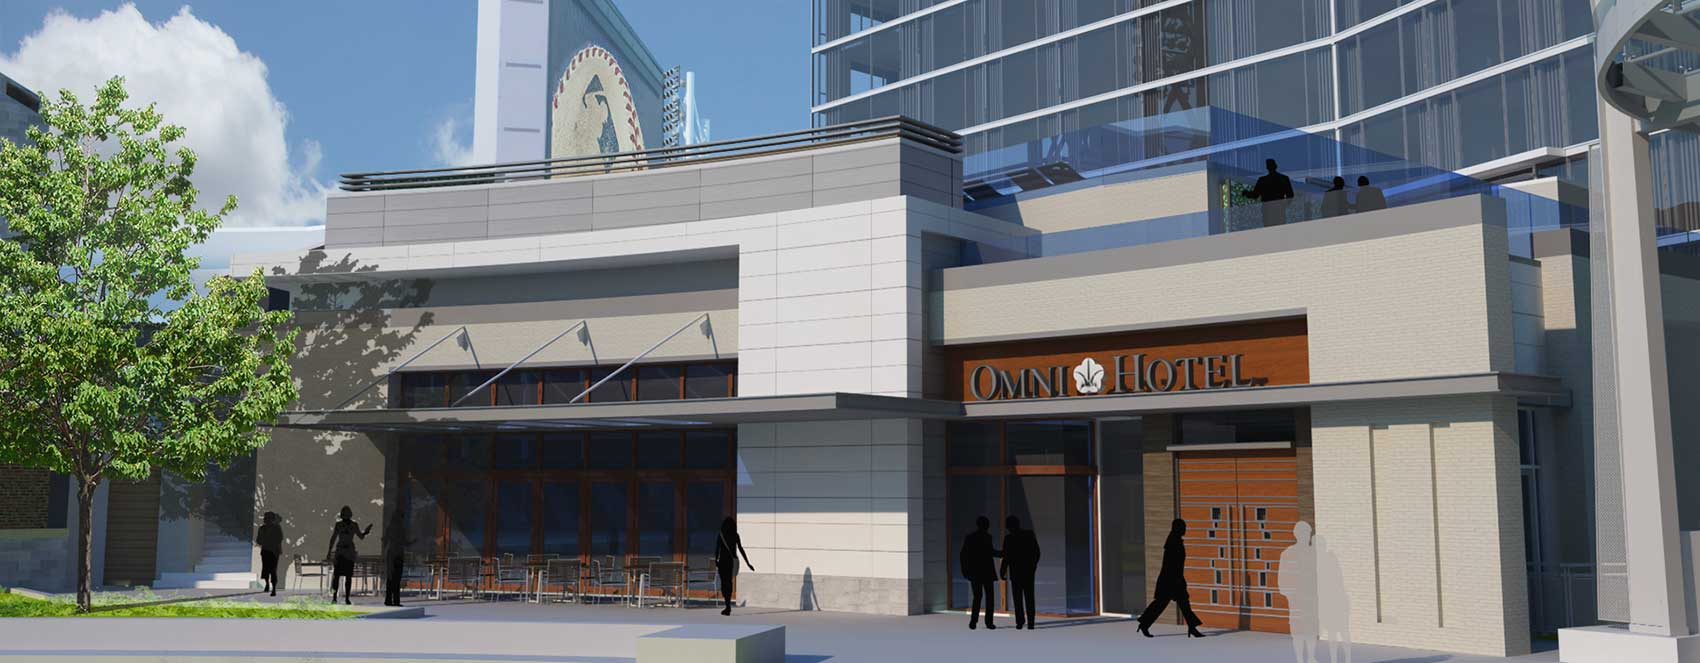 Omni Hotel At The Battery Atlanta Room Reveal Opens Early